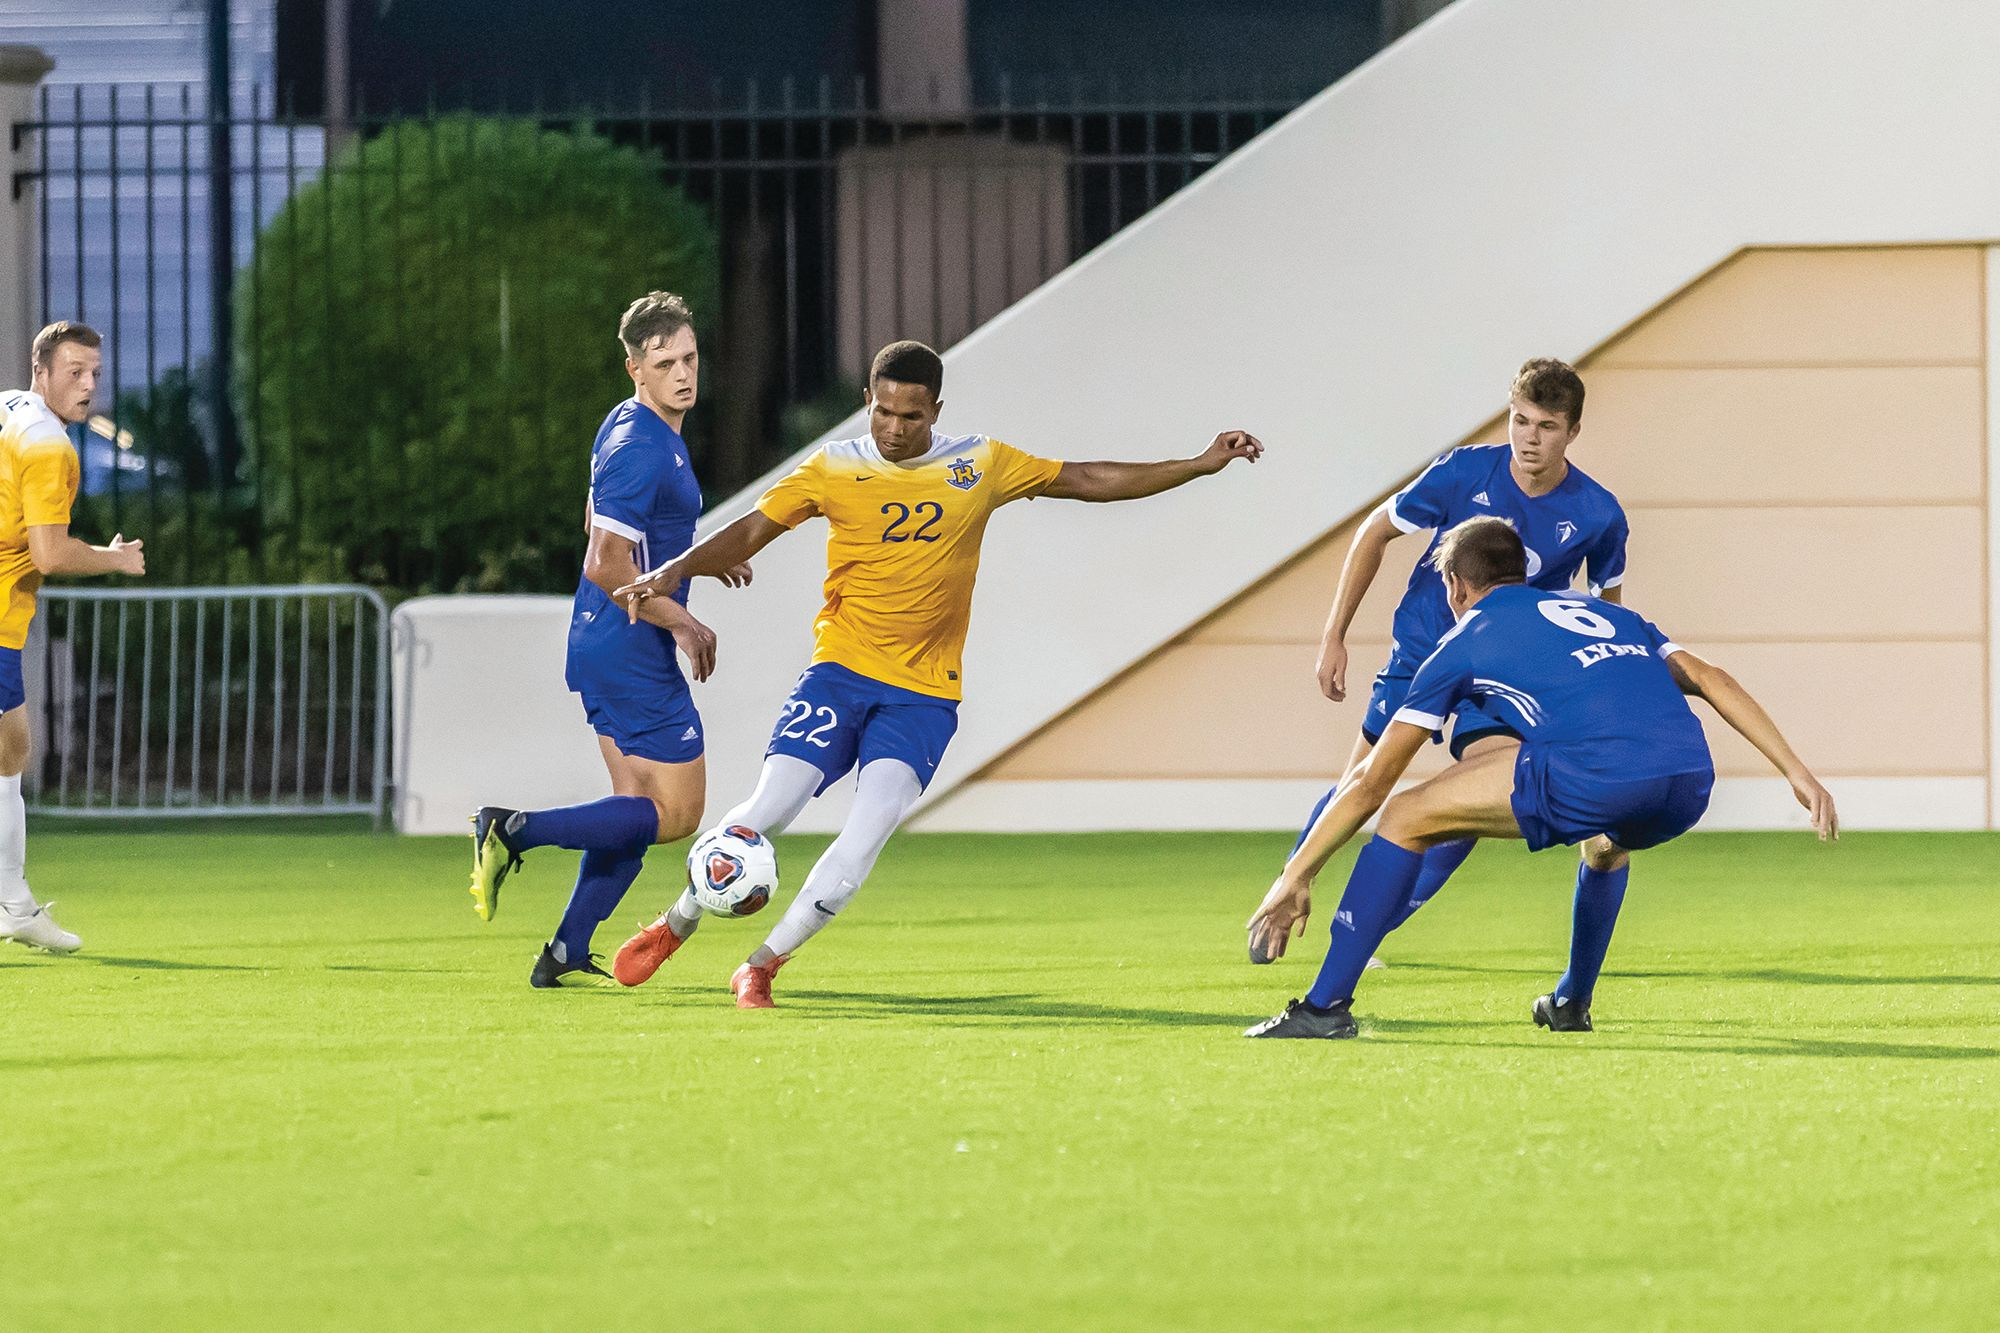 Damian Clarke '19 playing a soccer game as a midfielder.